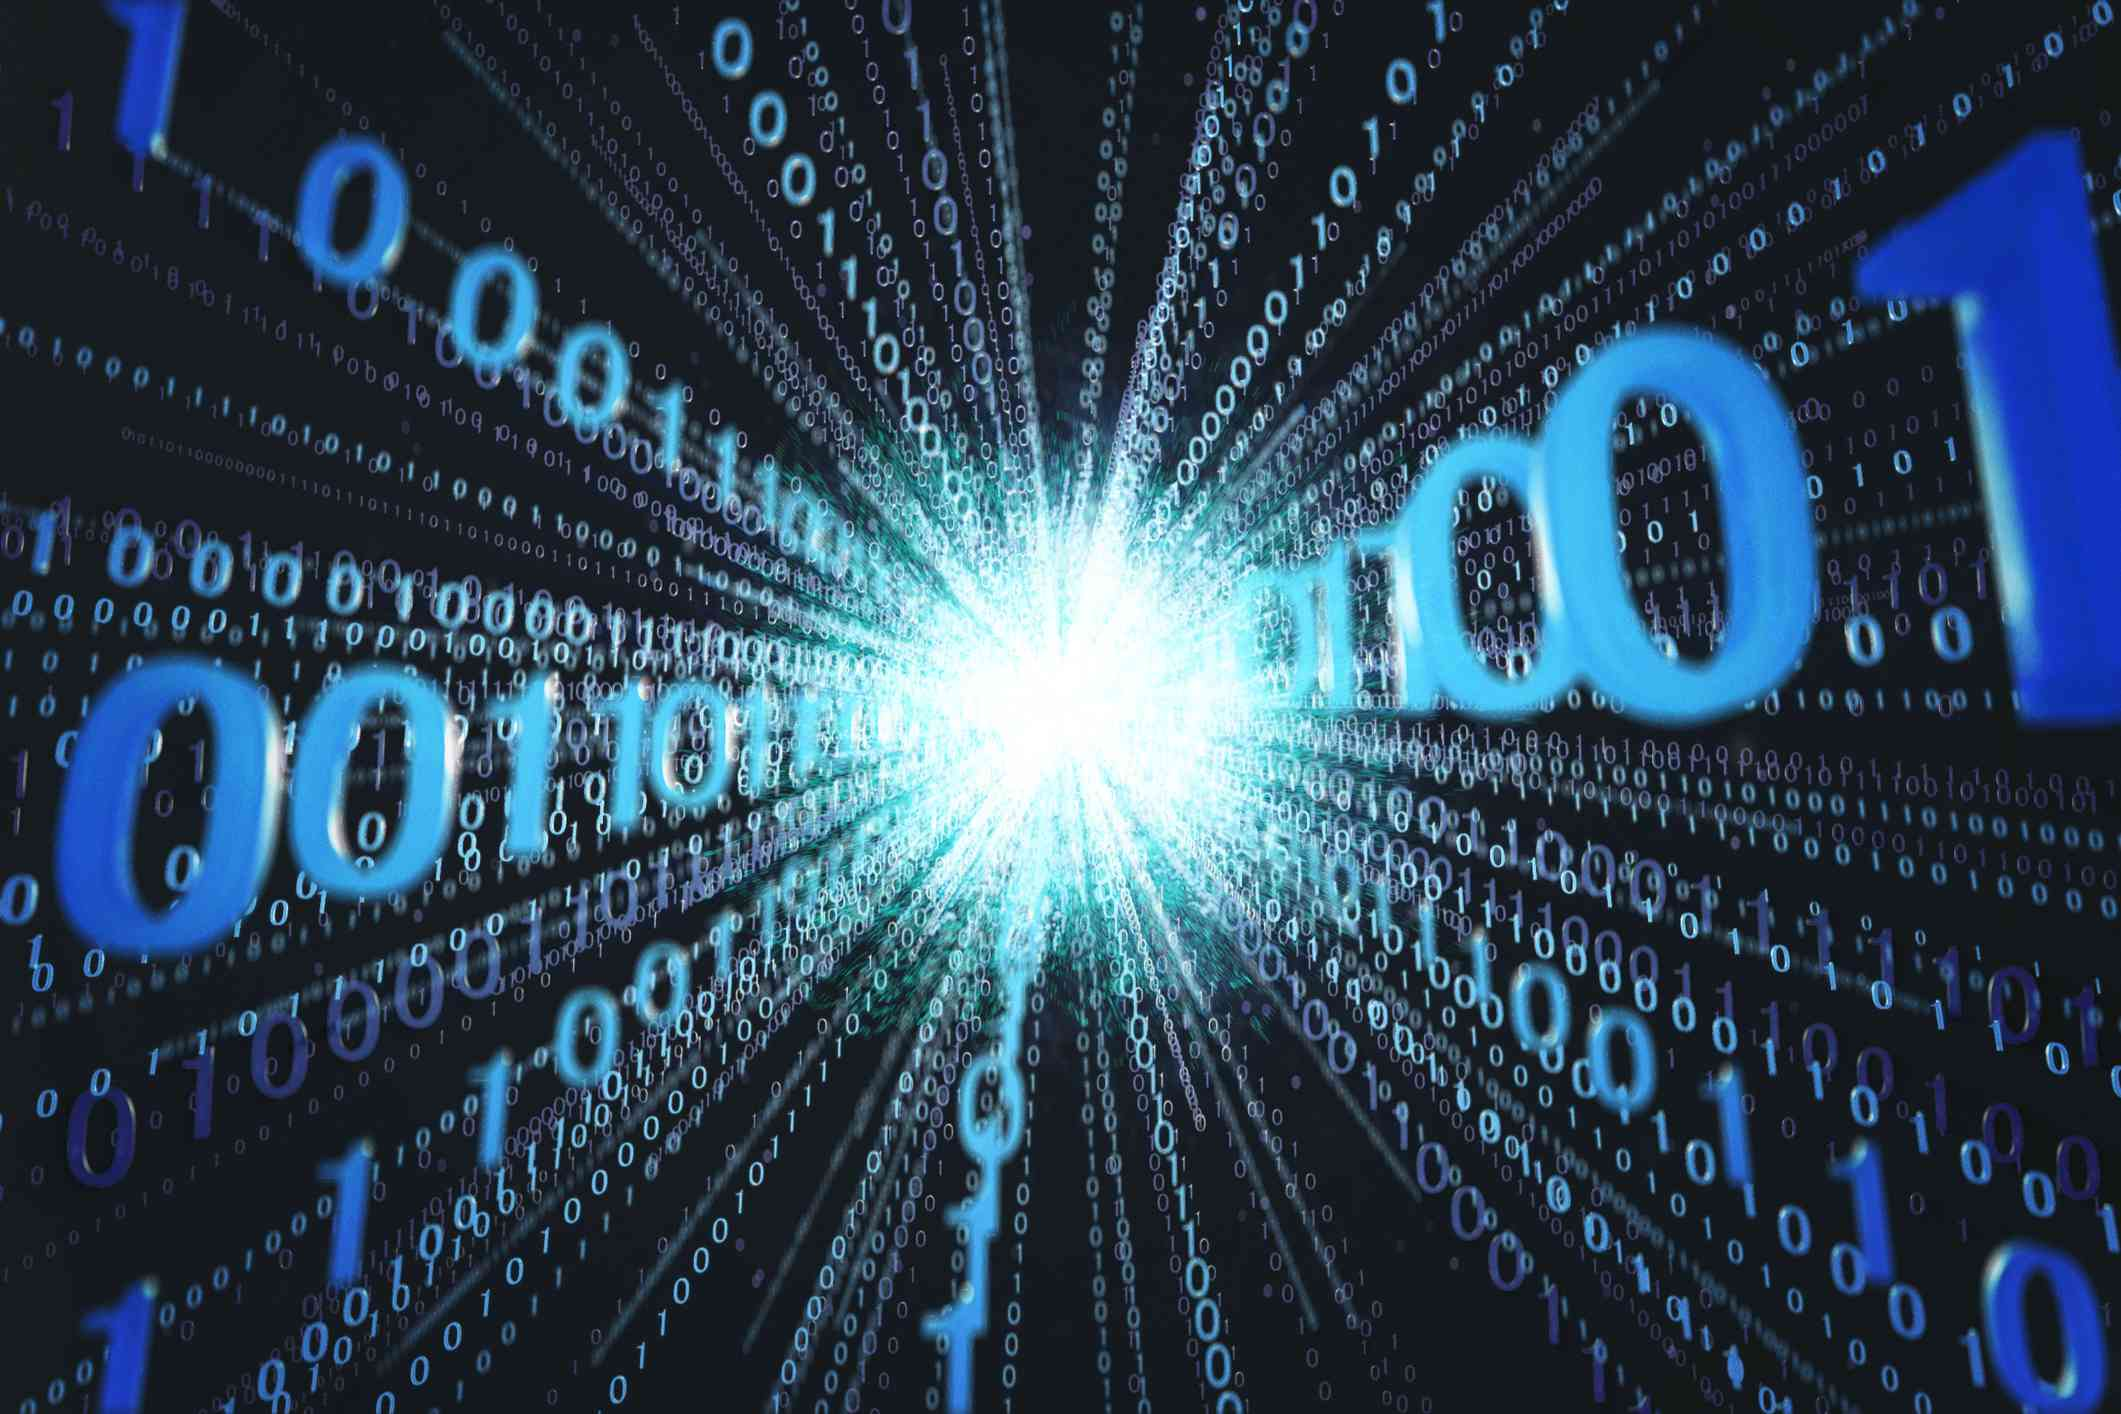 Binary code running out from computer calculating